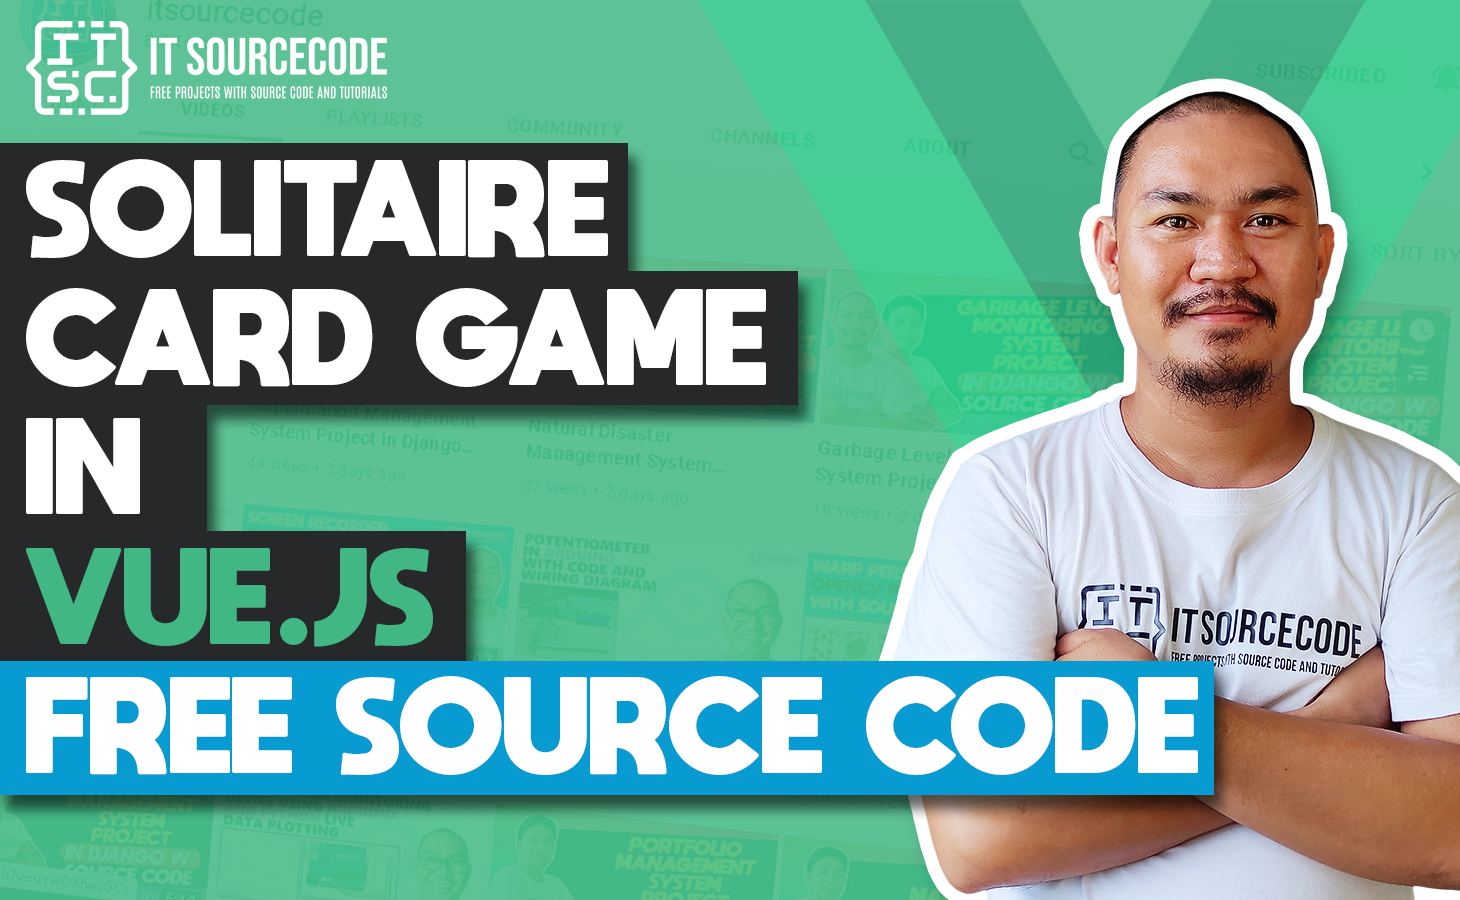 Solitaire Card game in vuejs